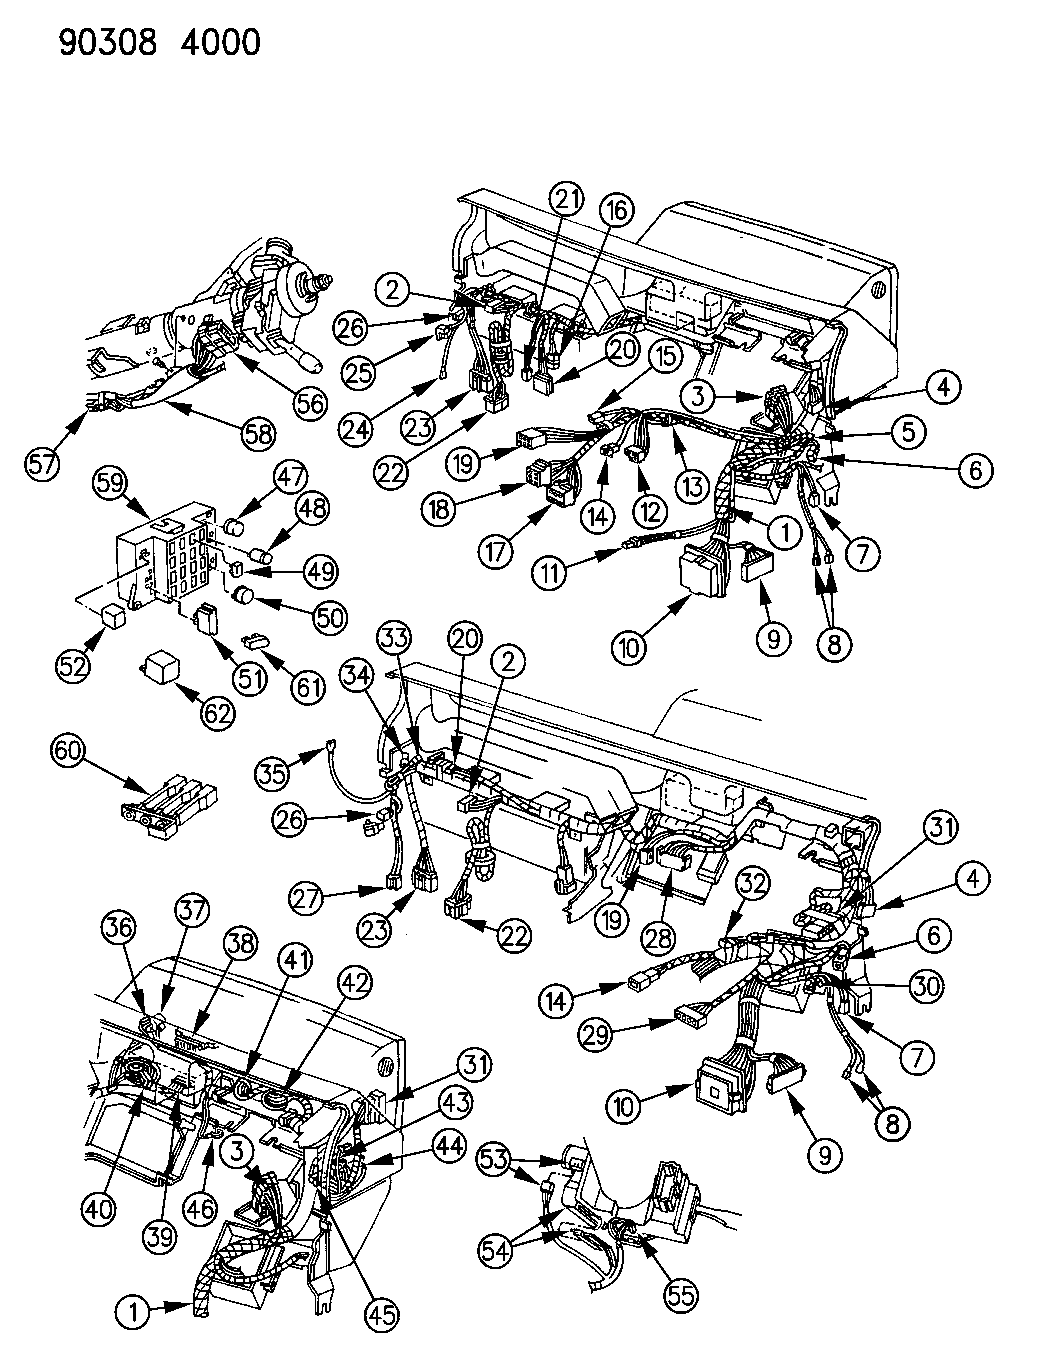 1991 Dodge Dakota Wiring - Instrument Panel